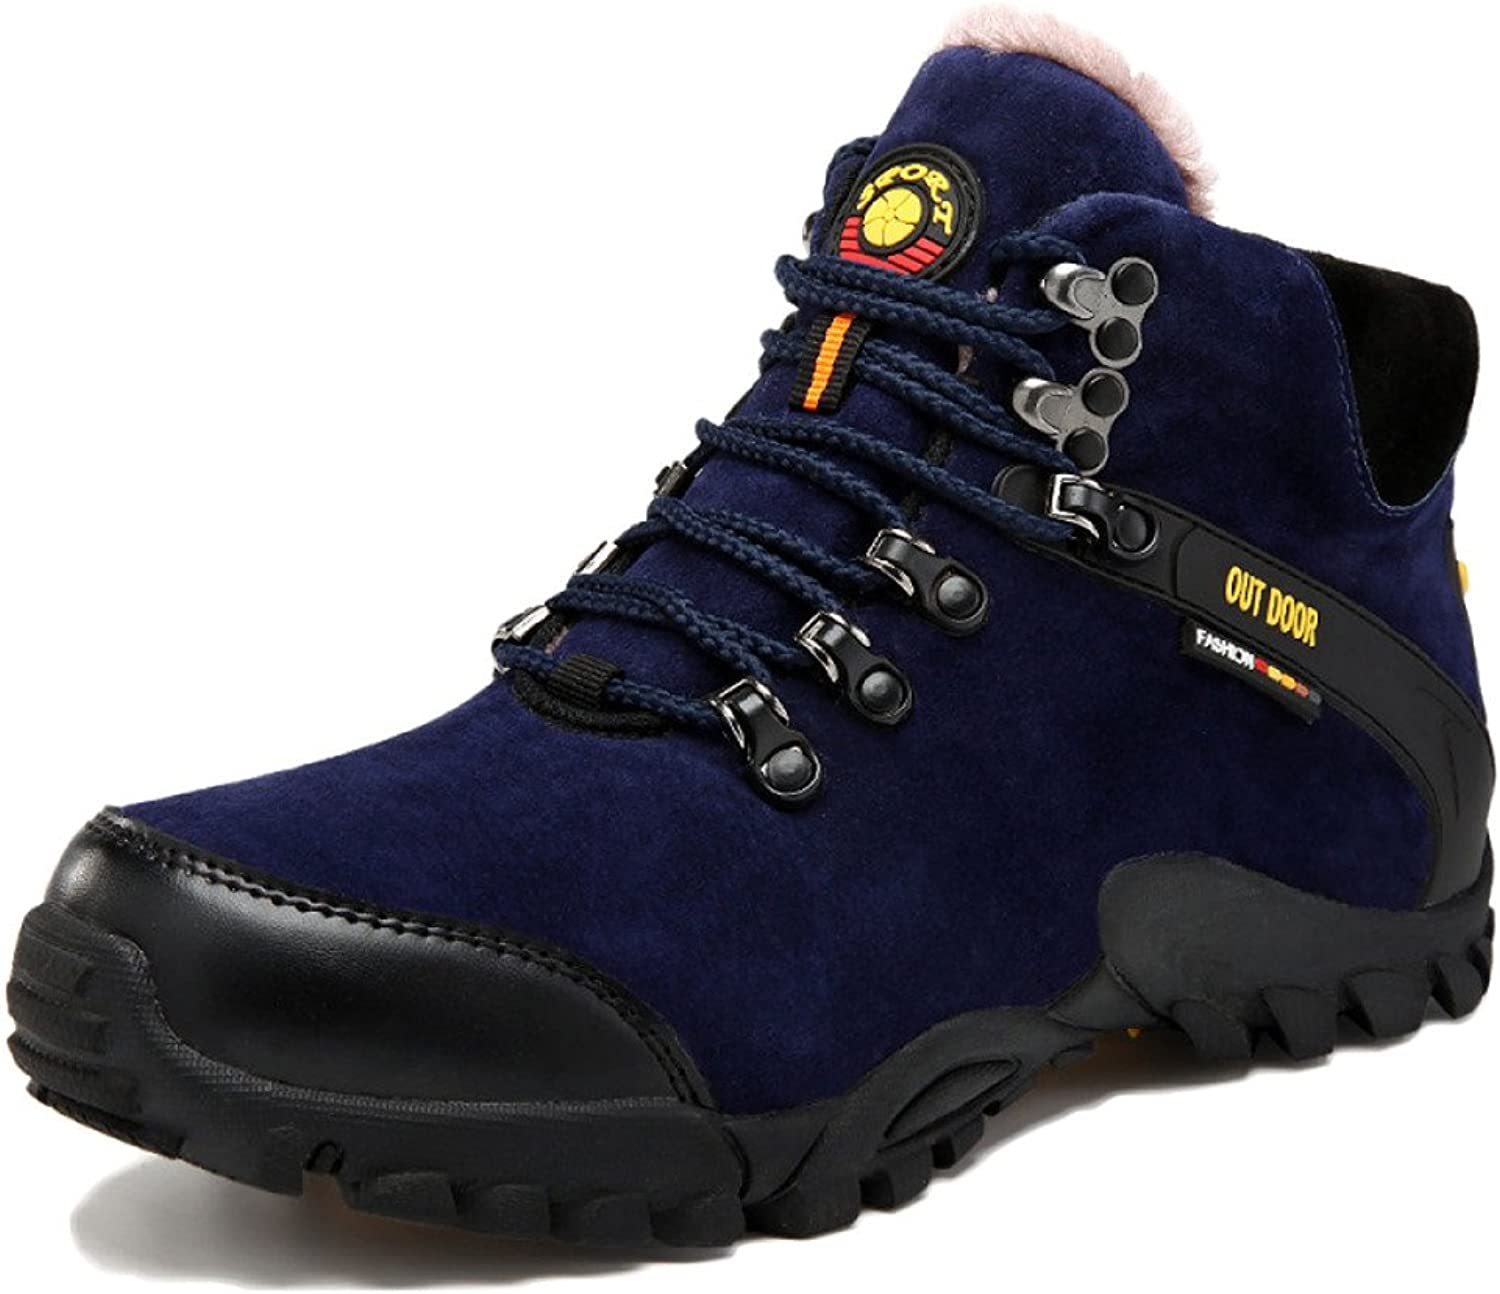 DSFGHE Sports shoes Men's Women's High Rise Hiking shoes Waterproof Climbing Boots Autumn and Winter Plus Velvet Outdoor Sports shoes